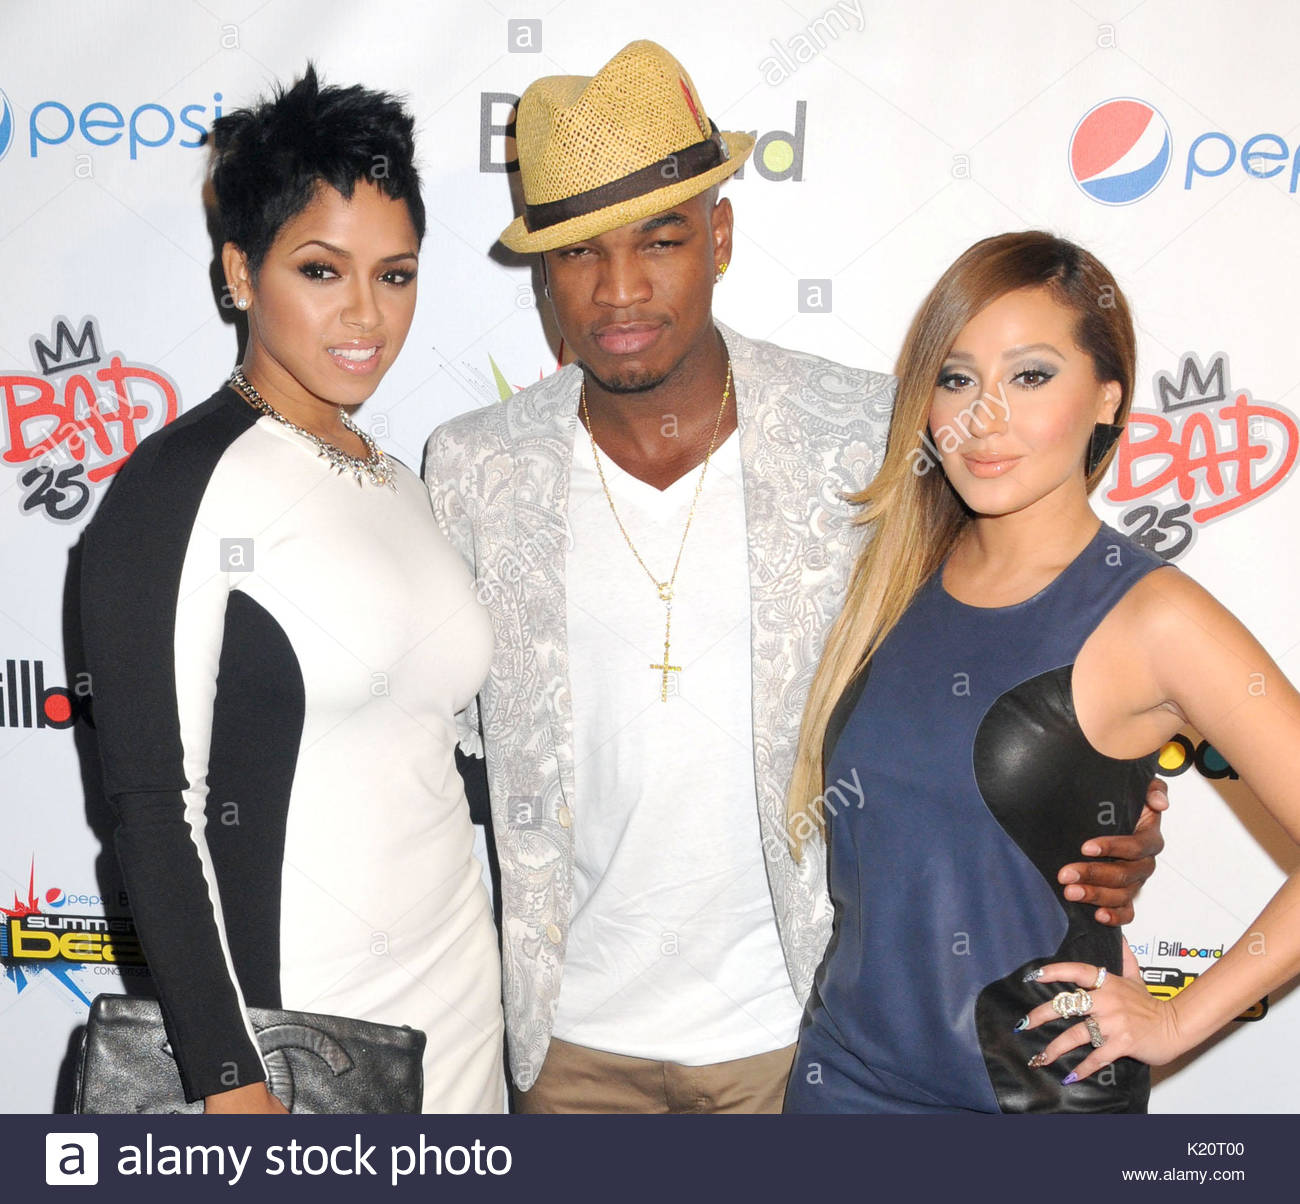 Is ne yo dating adrienne